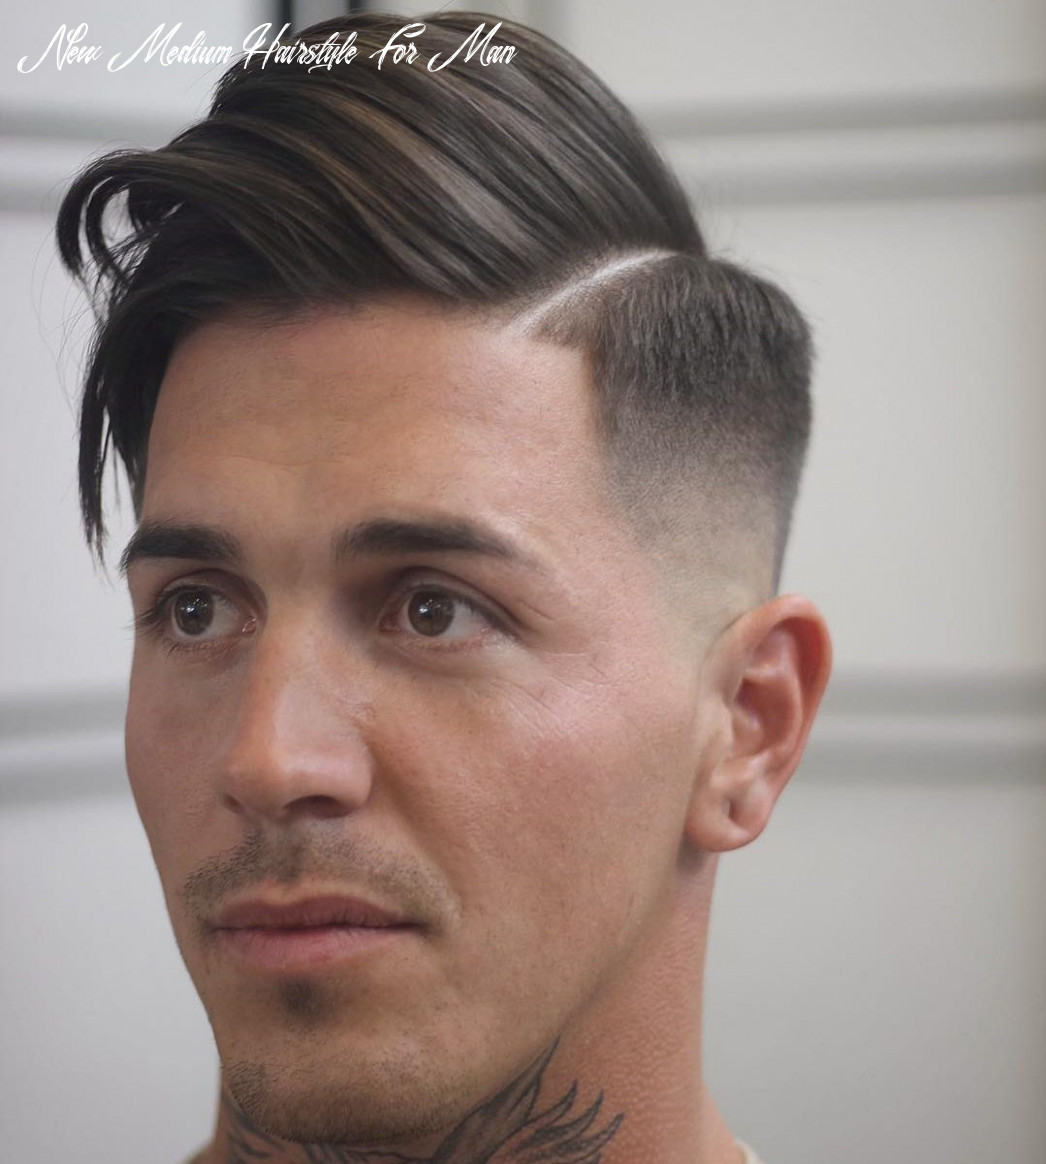 12 medium hairstyles for men (cool 12 styles) new medium hairstyle for man